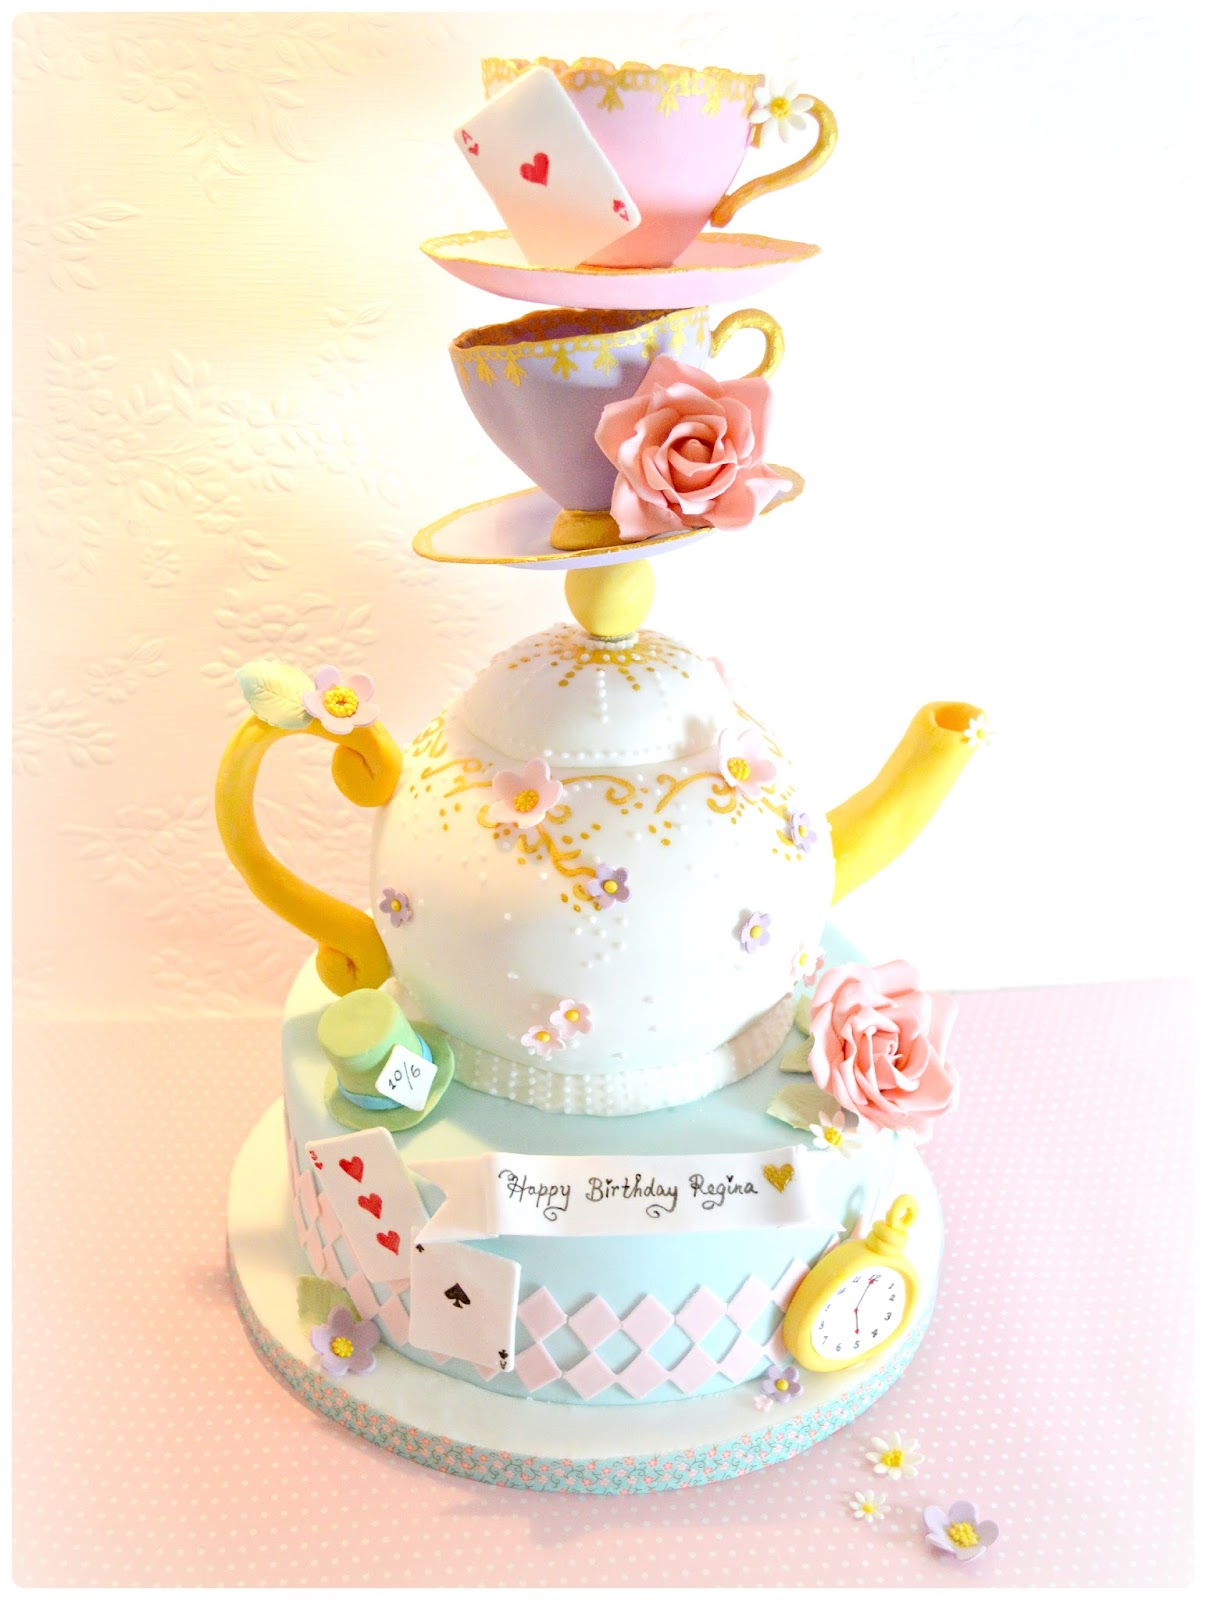 Topsy Turvy Mad Hatter Teapot and Teacups Birthday Cake London Cherie Kelly